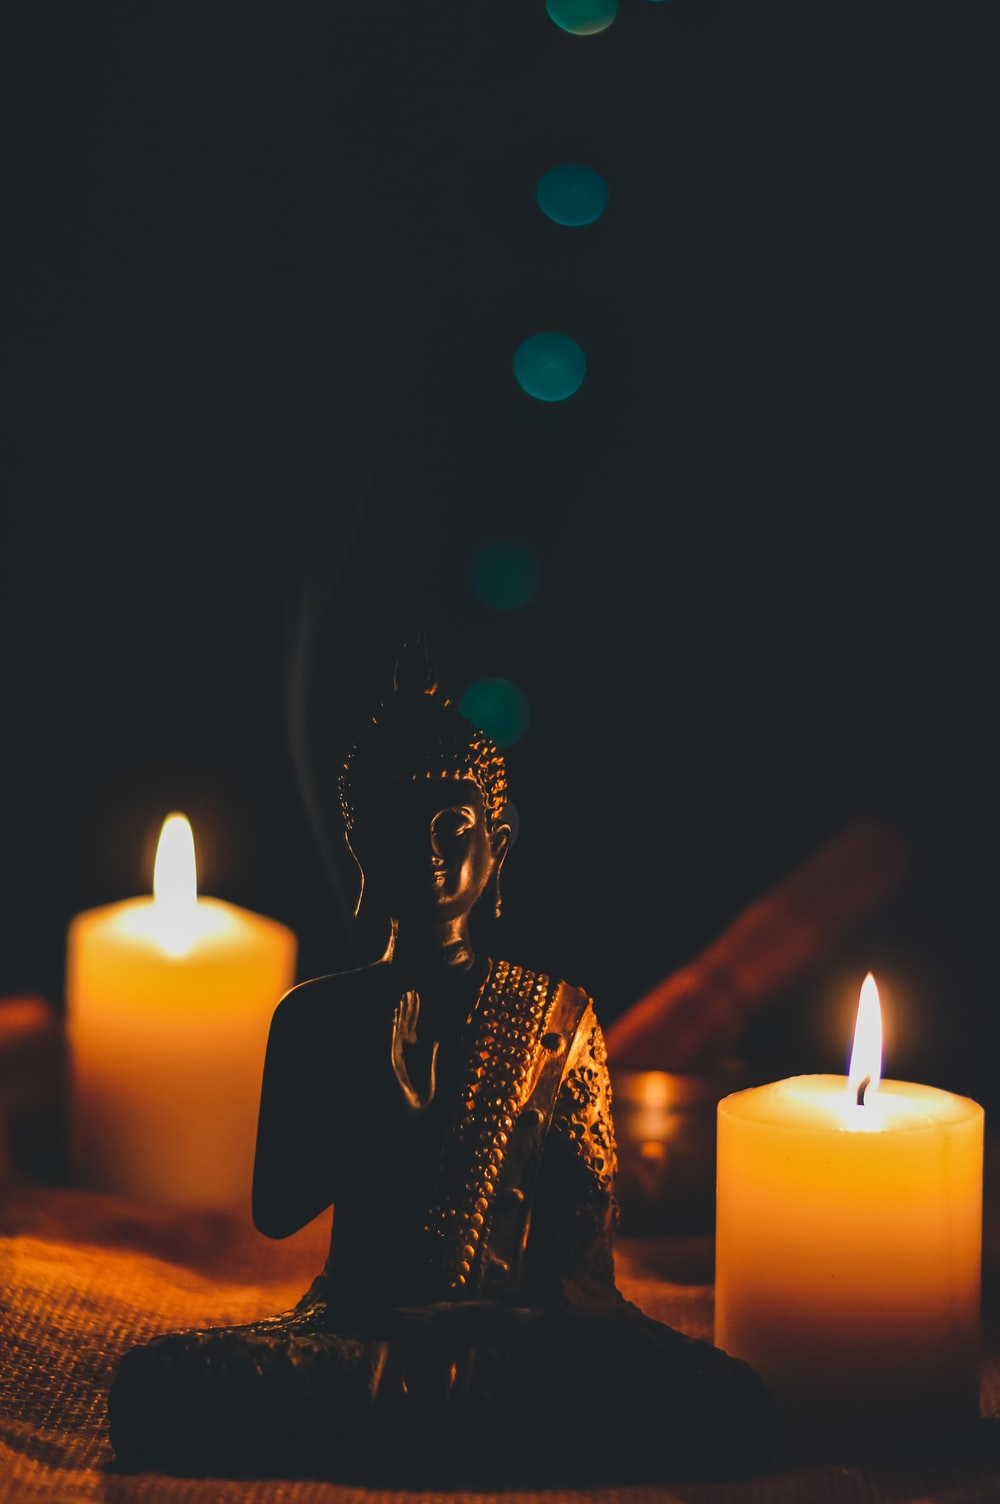 500 Meditation Pictures Download Free Images Stock Photos On Unsplash